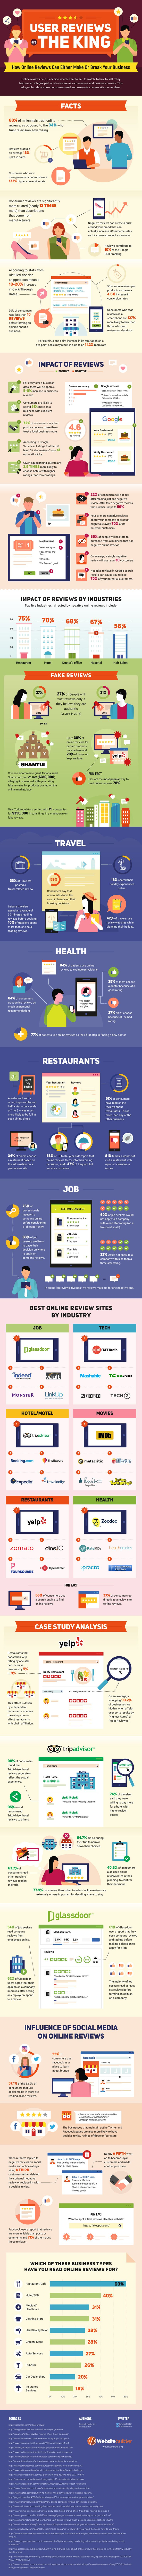 Your Marketing Strategy Needs Online Reviews! These Stats Prove It [Infographic]